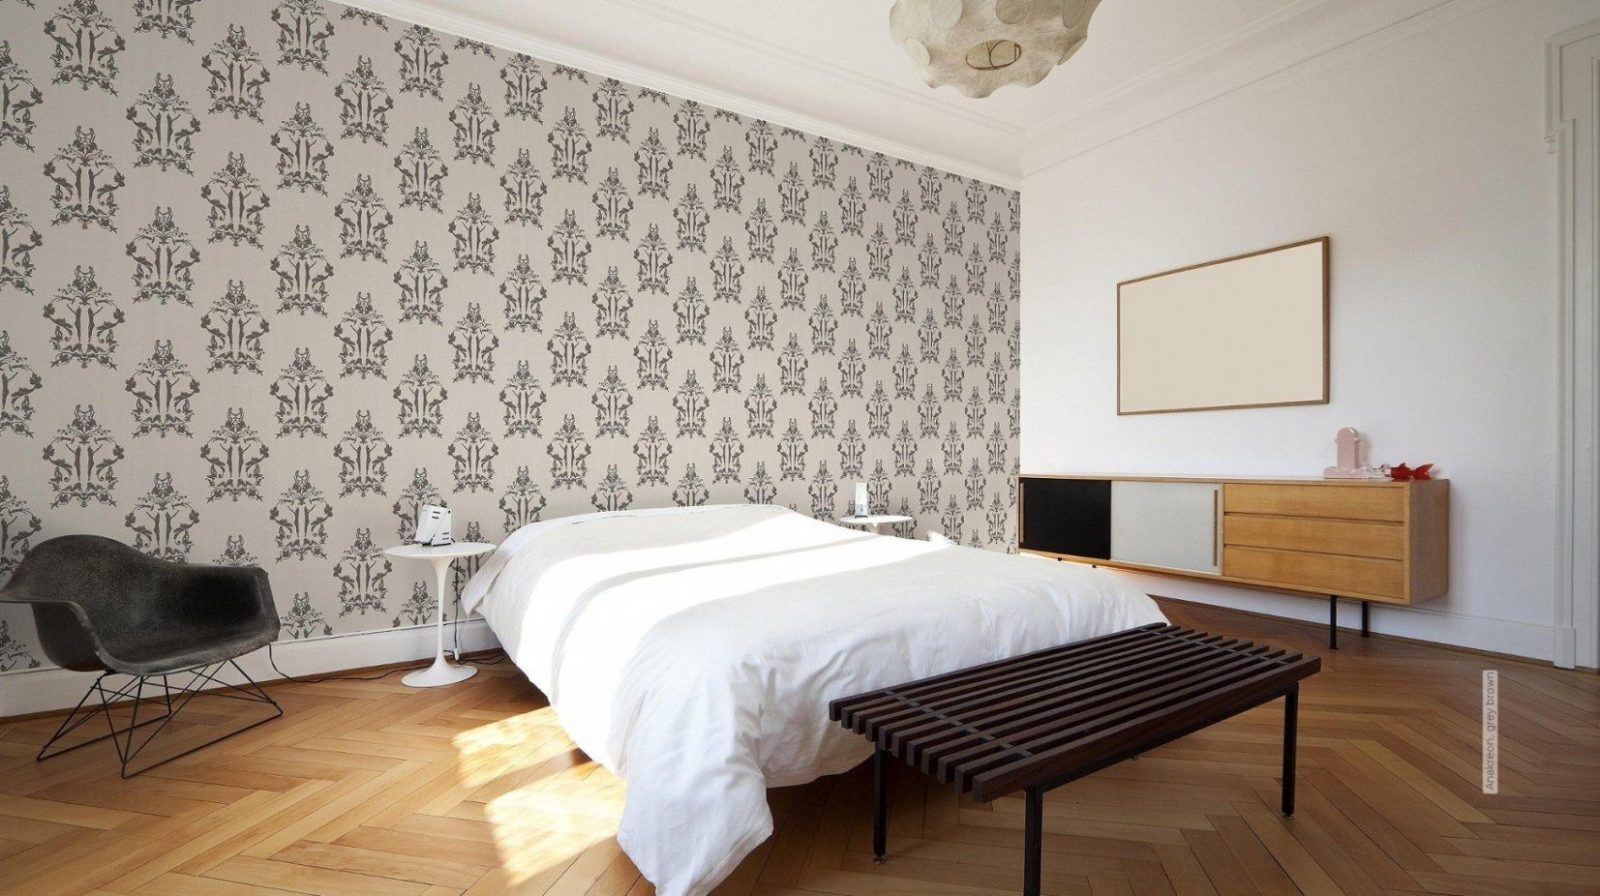 tapeten ideen schlafzimmer von tapeten design ideen schlafzimmer bild haus design ideen. Black Bedroom Furniture Sets. Home Design Ideas